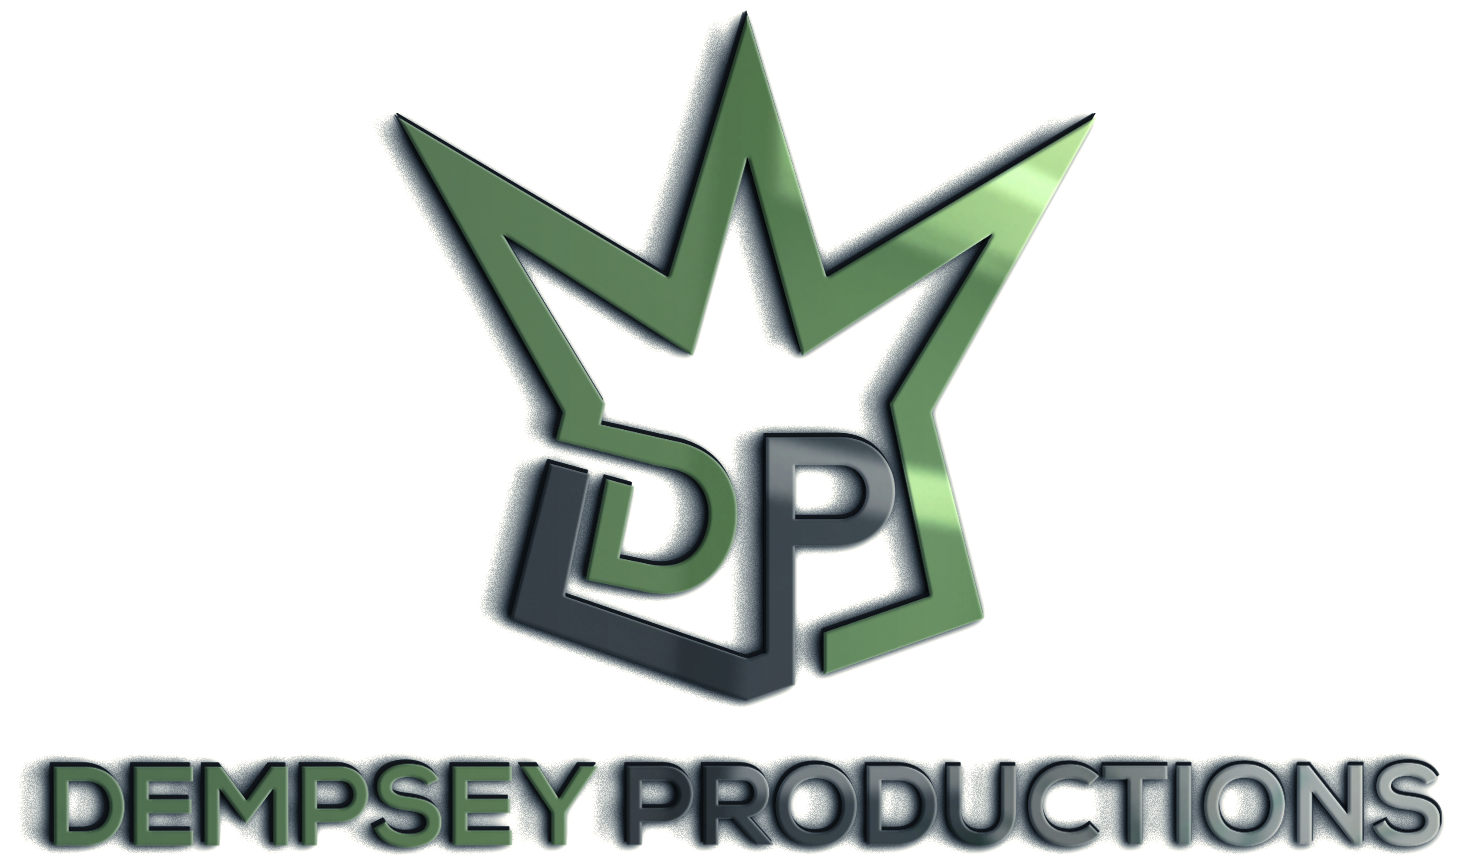 Dempsey Productions